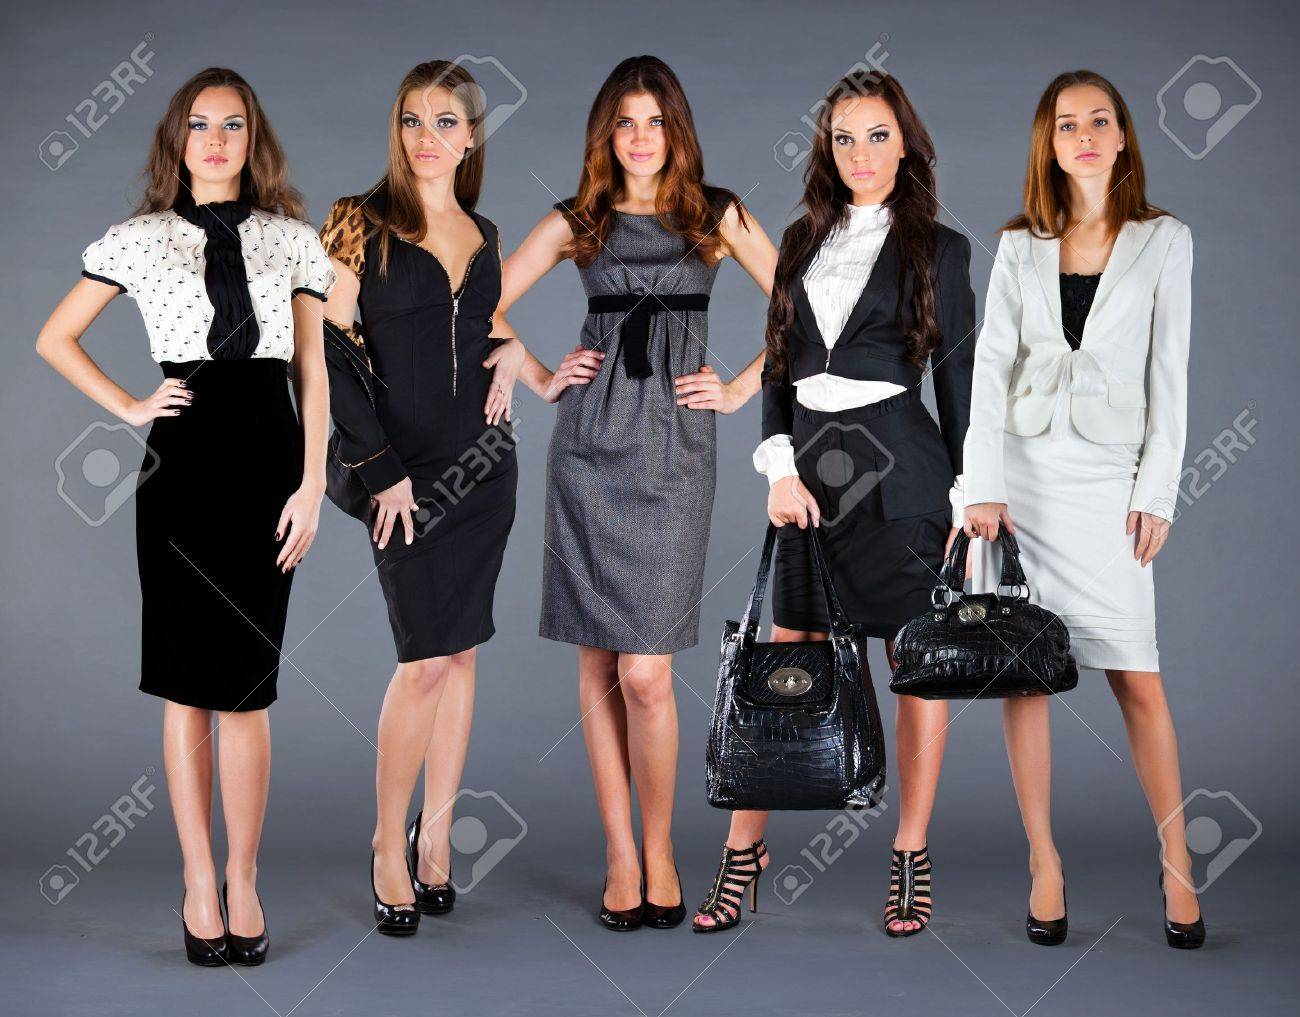 Girls Business Dress